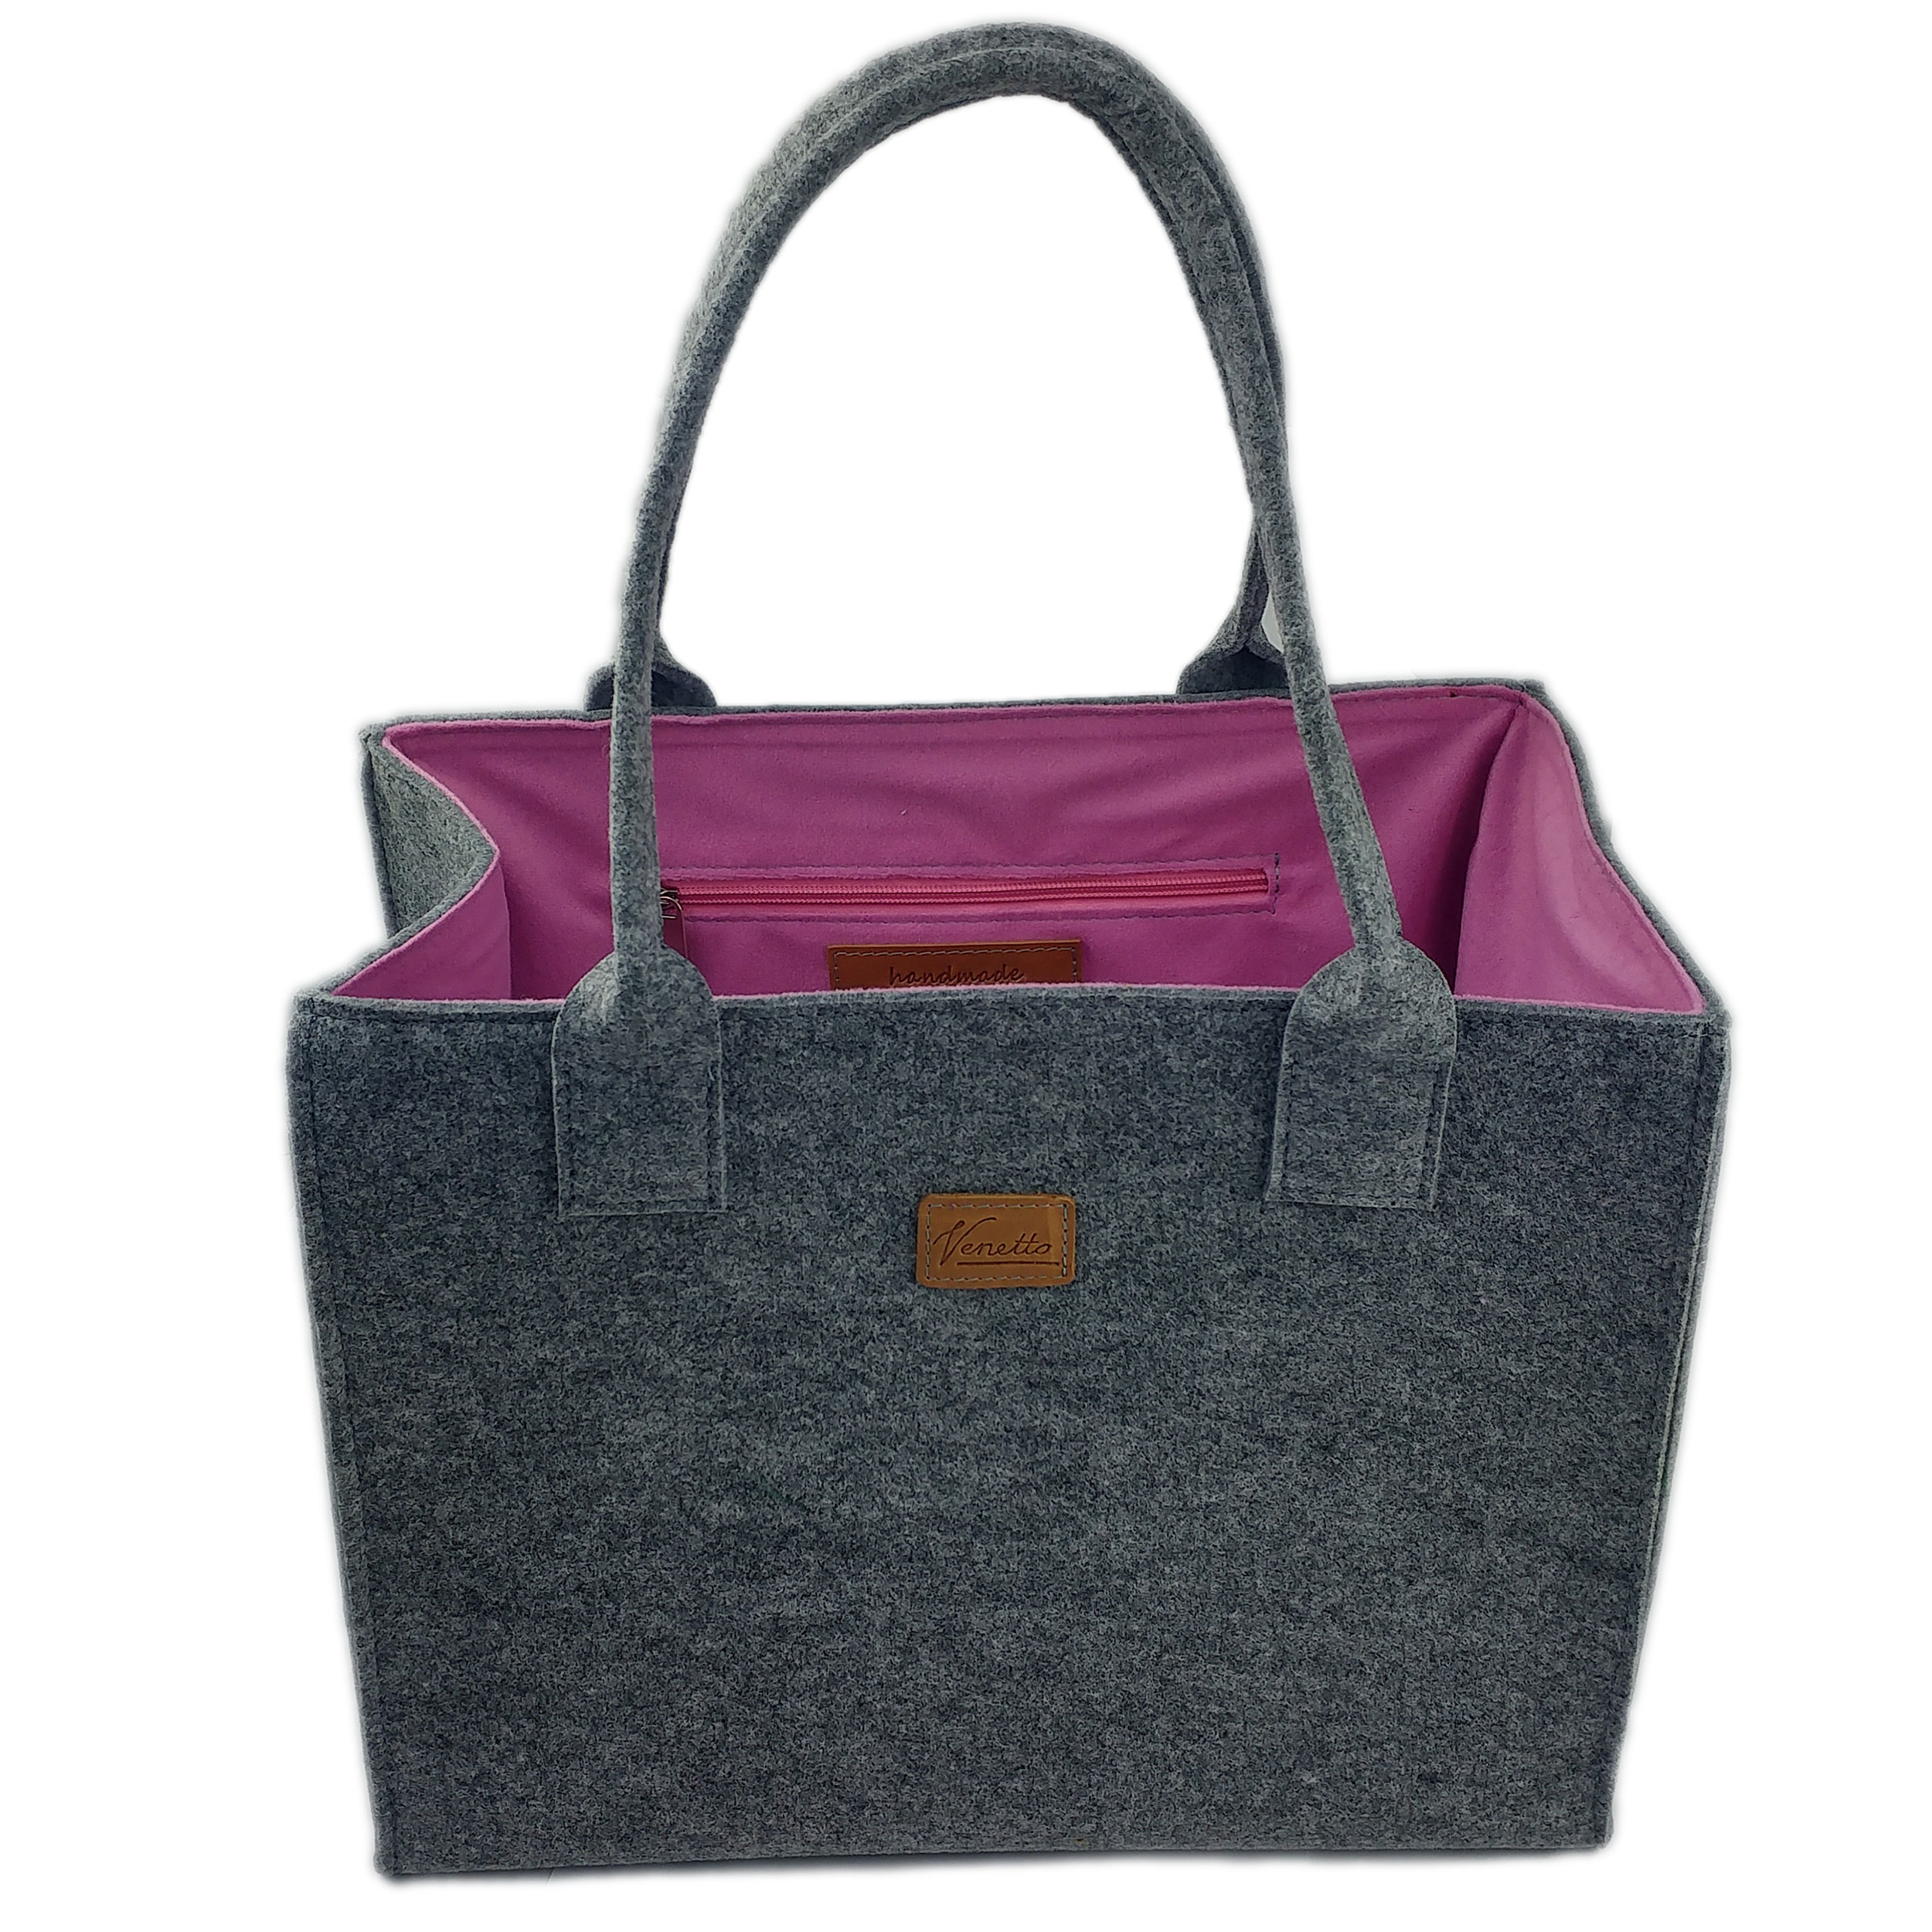 Shopper aus Filz grau pink Venetto made in Germany